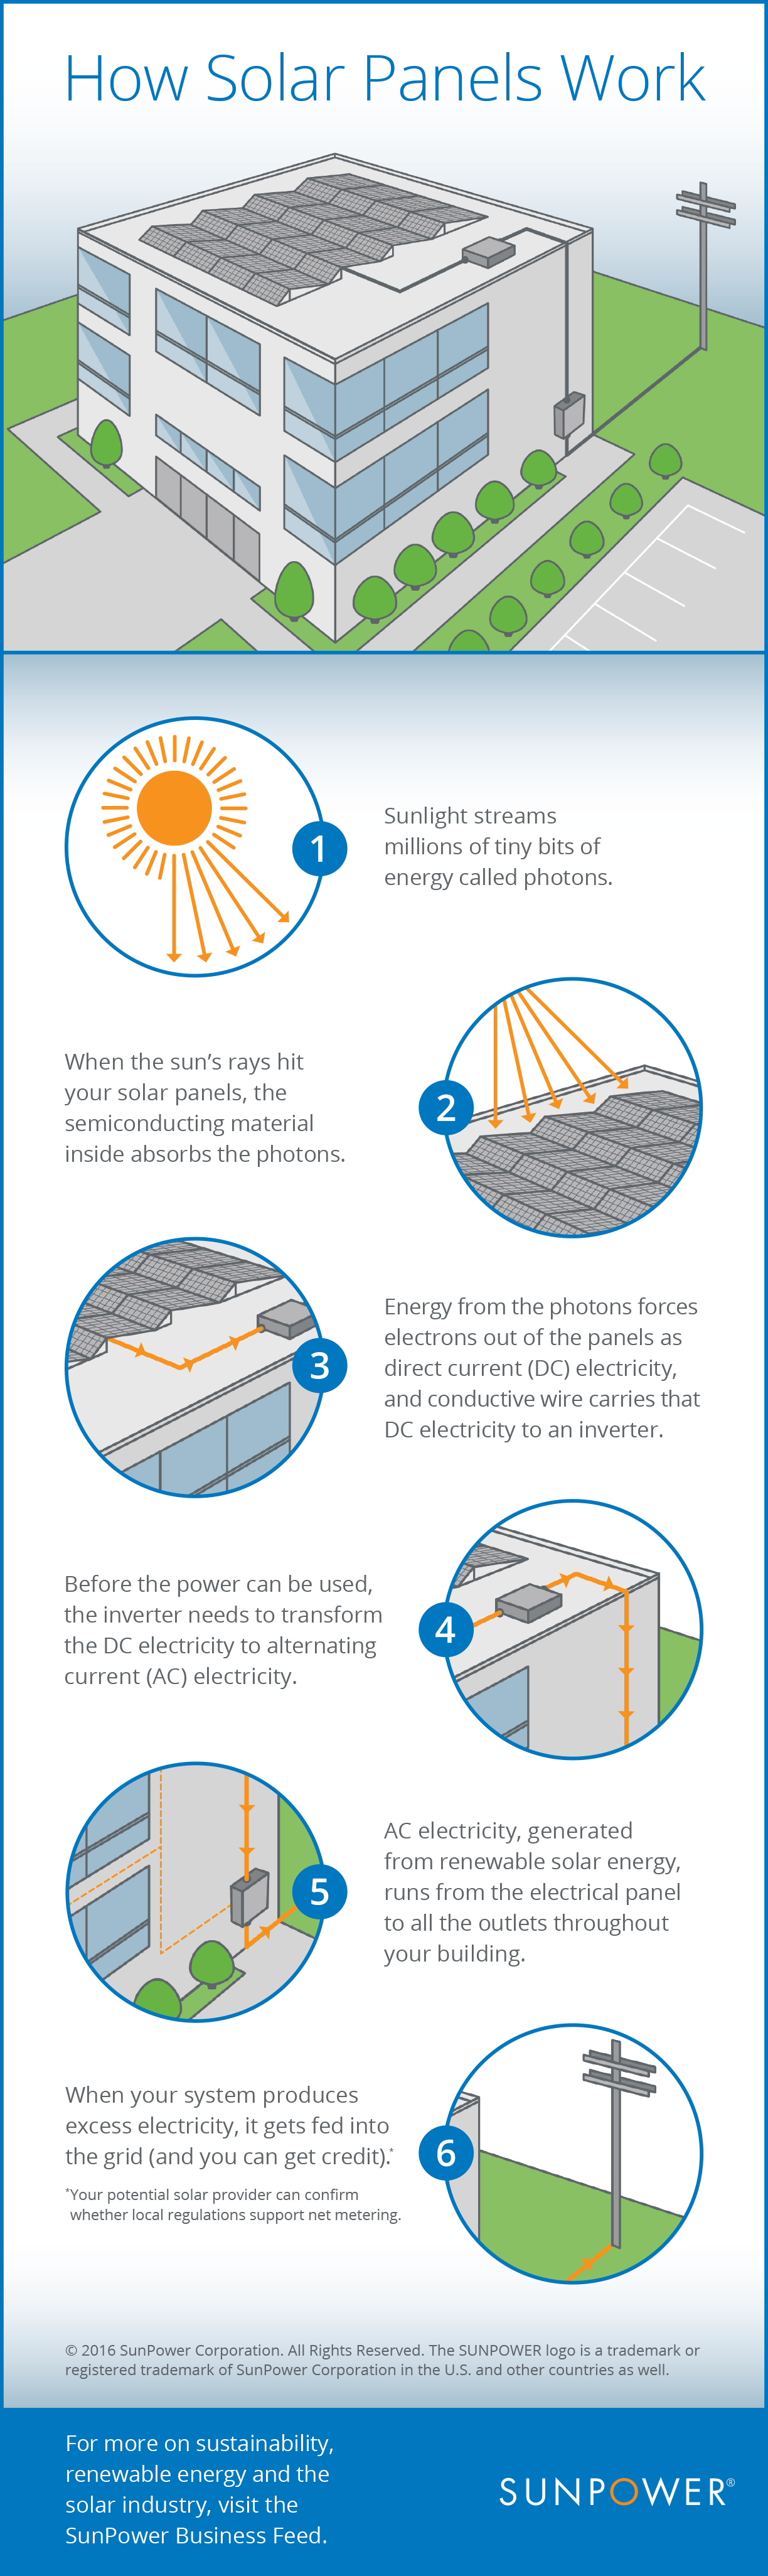 How commercial solar panels work infographic